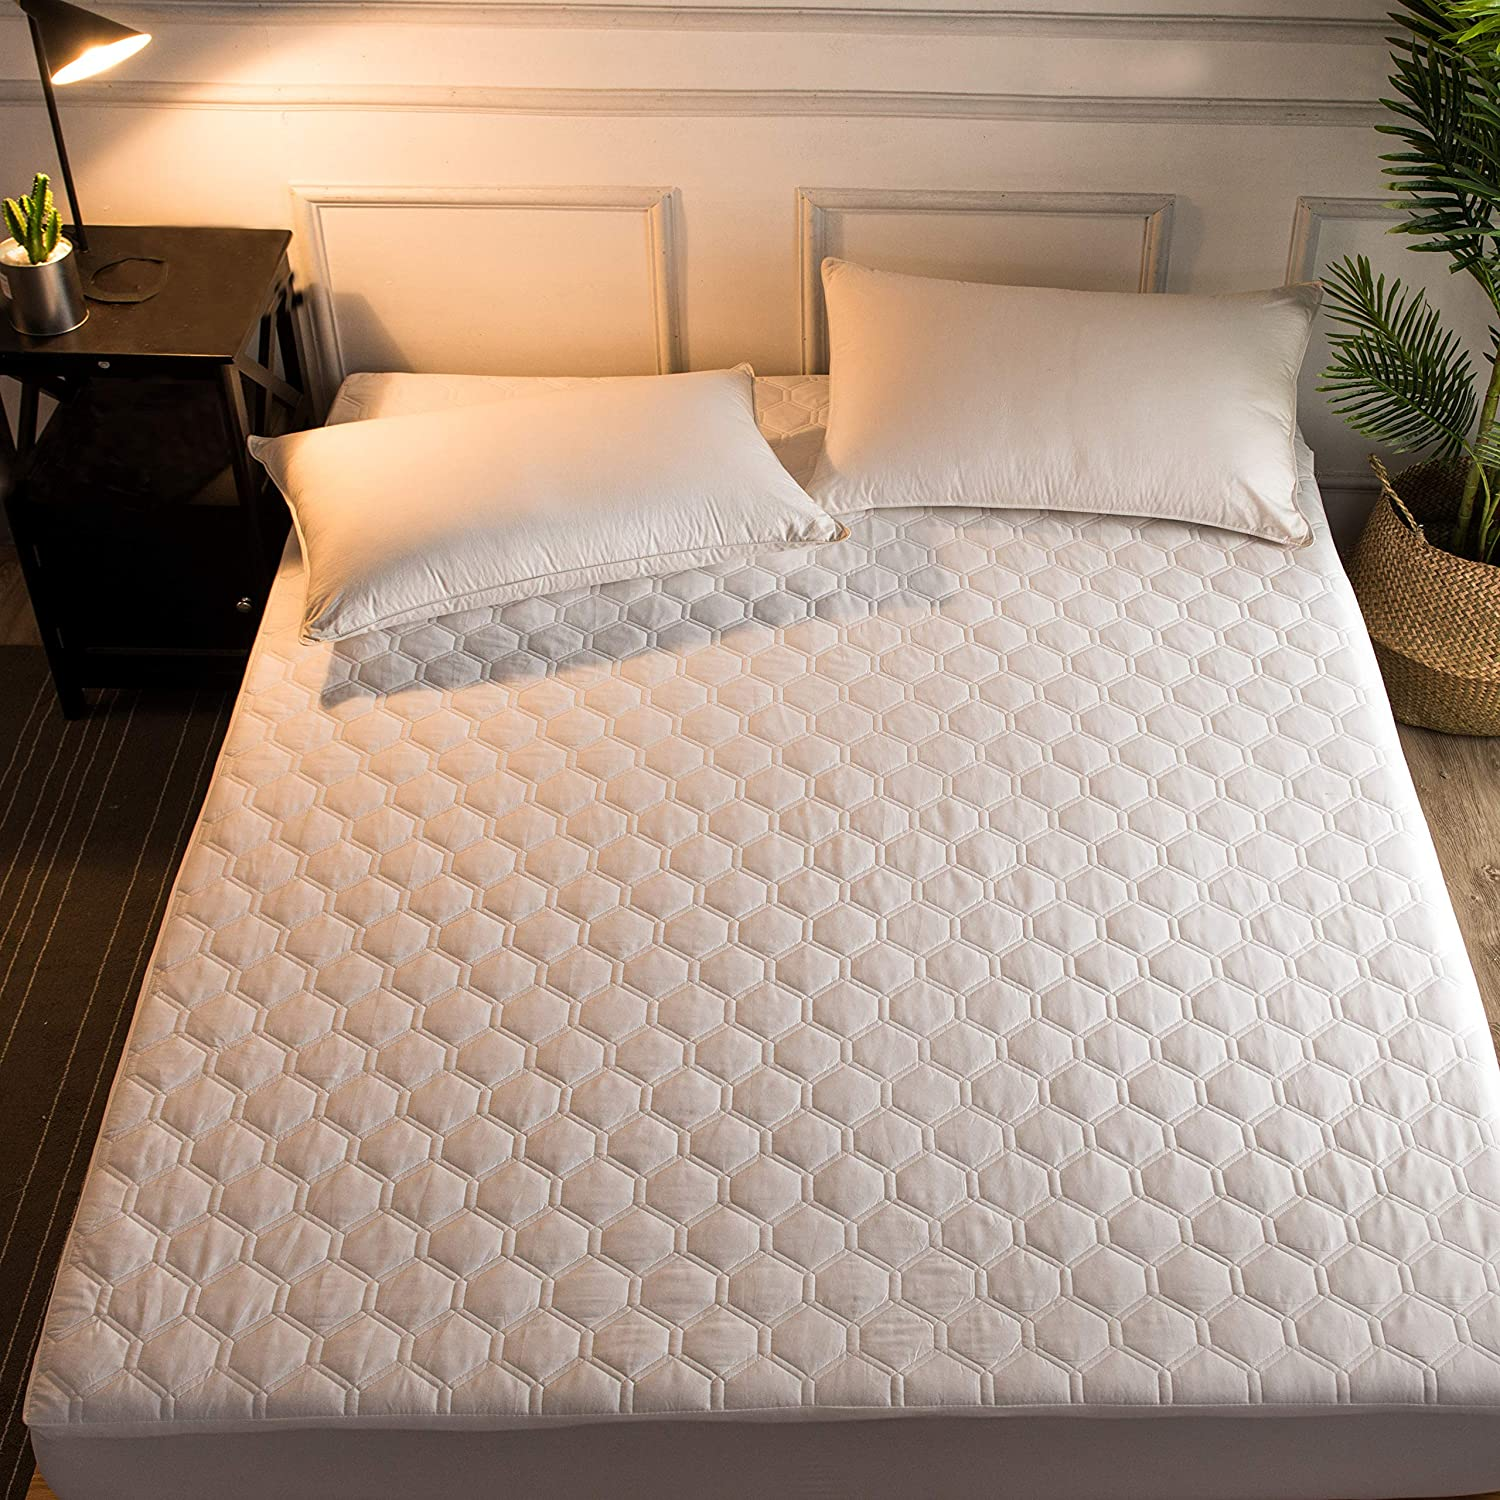 100% quality warranty! Hani Minna Premium shop Quilted Fitted Protector Made wi Pad Mattress